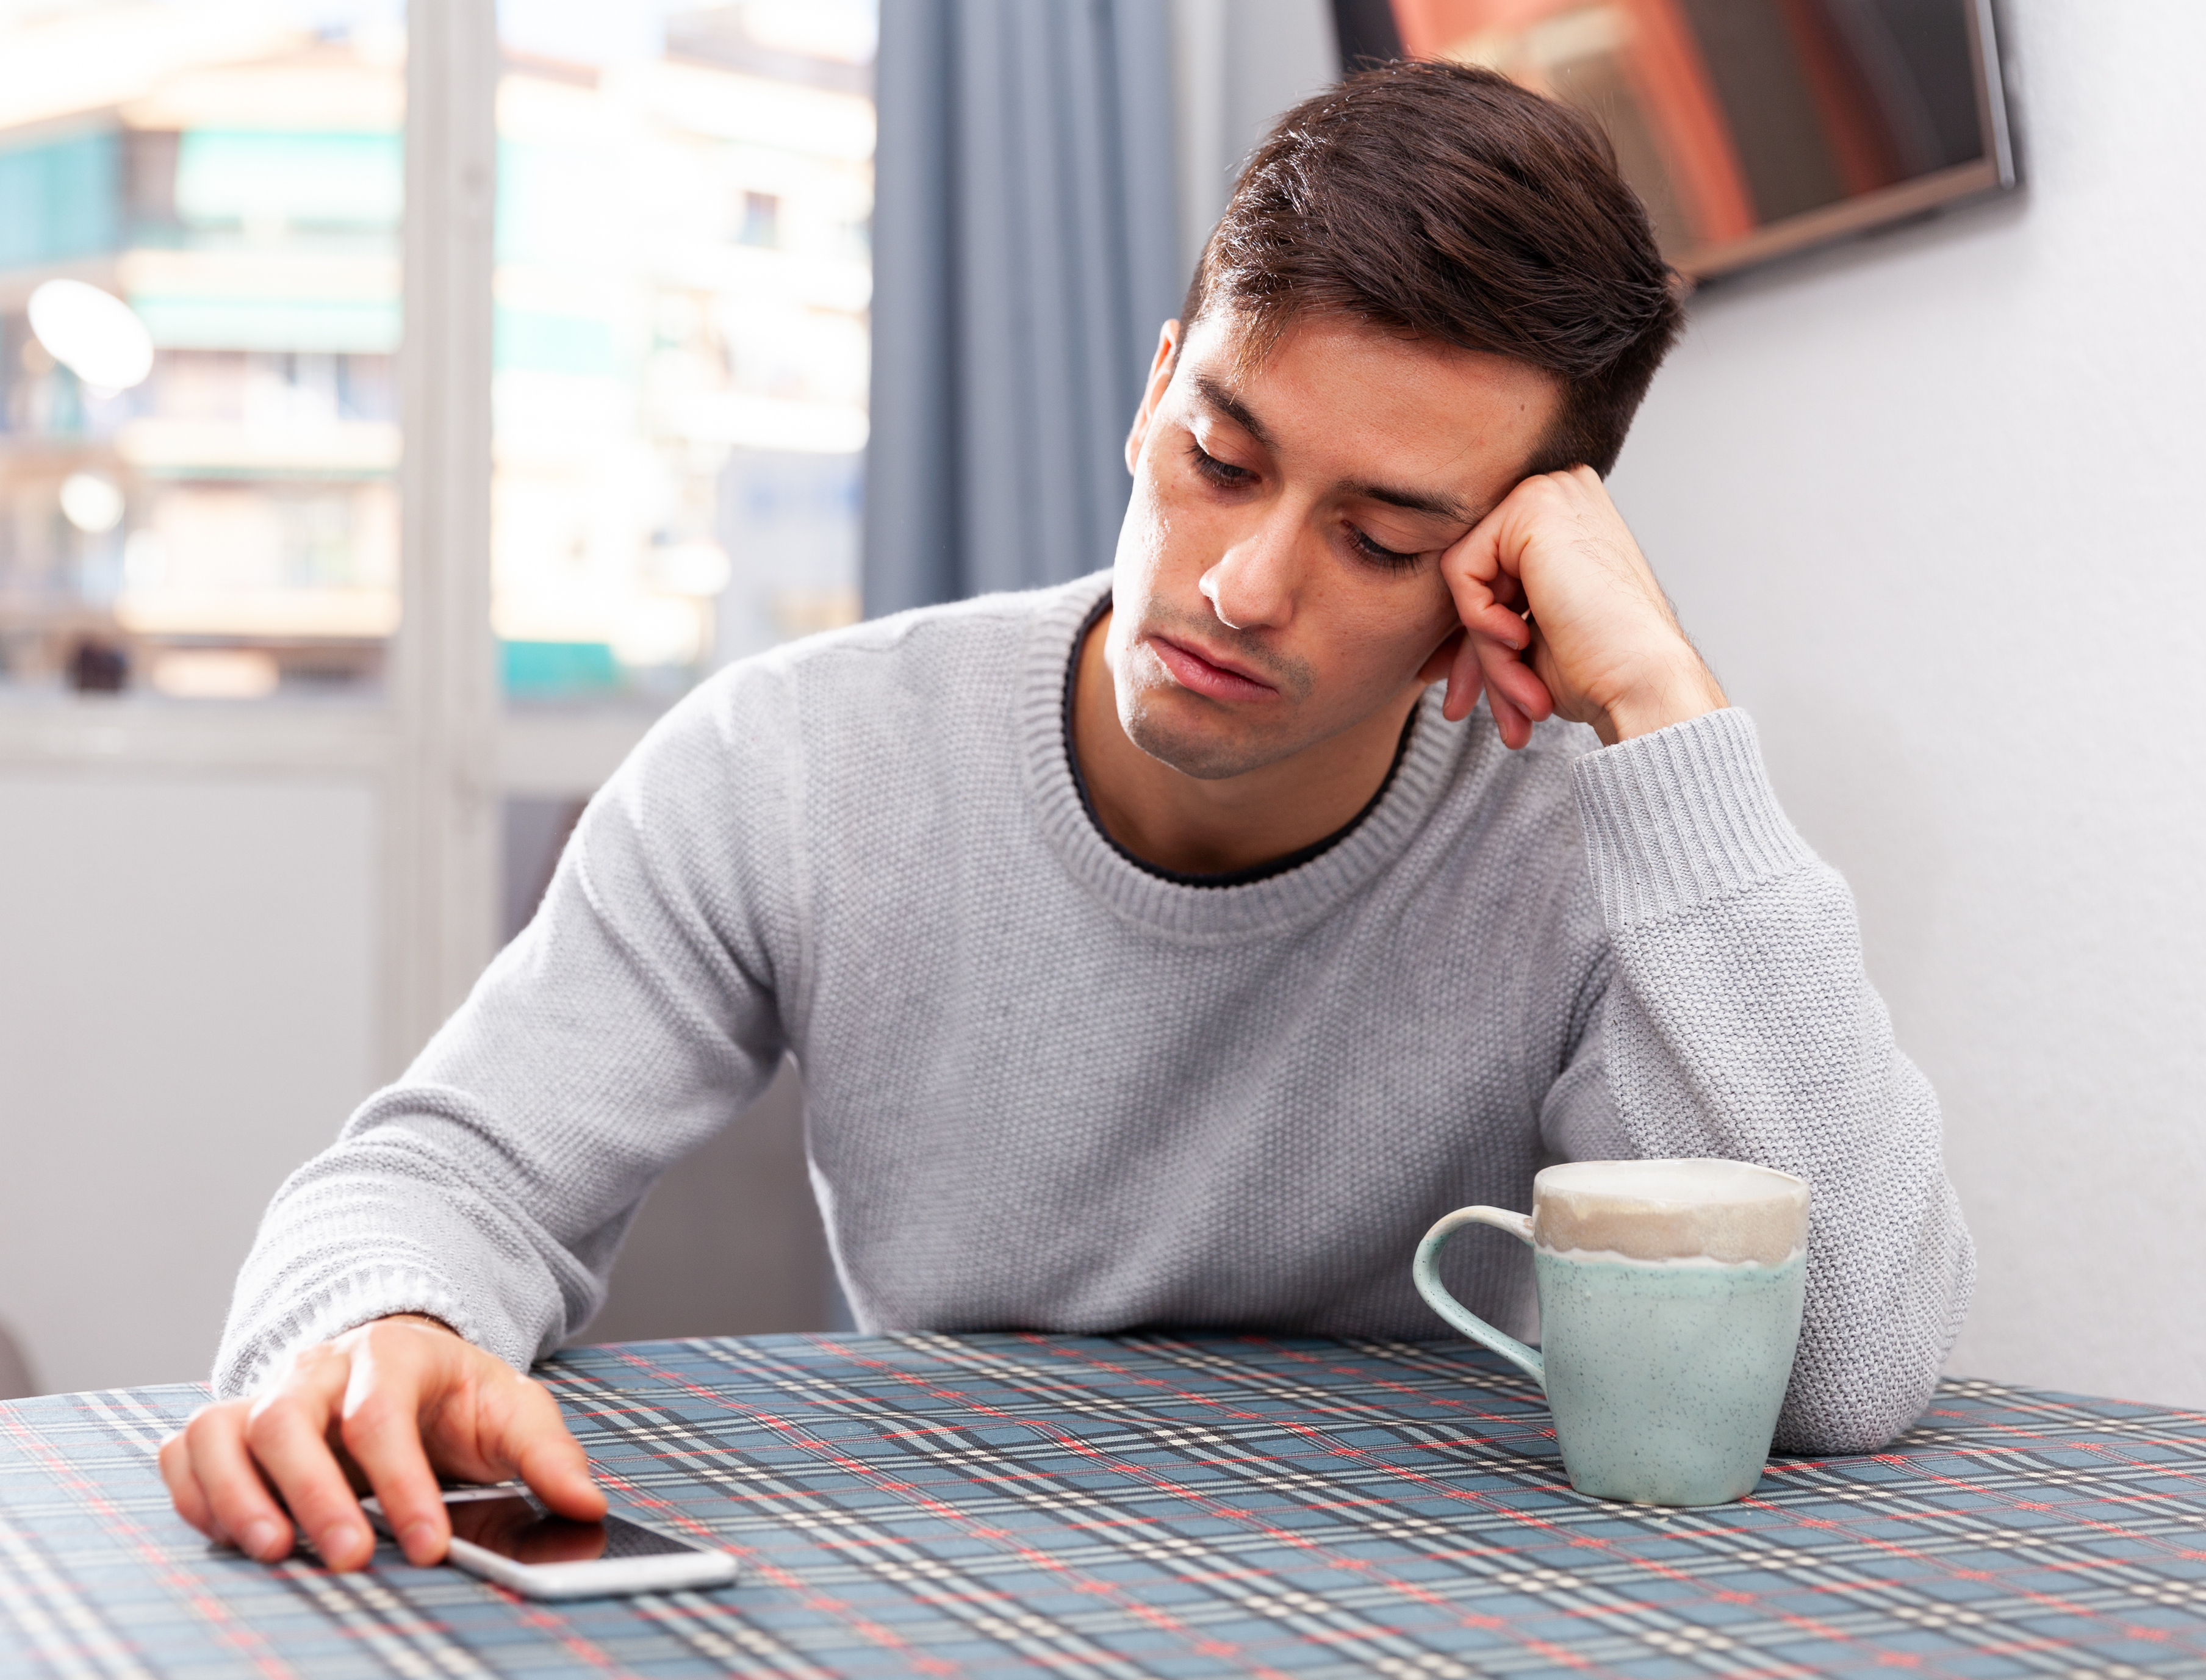 Online Dating: When To Give Up On A Match?